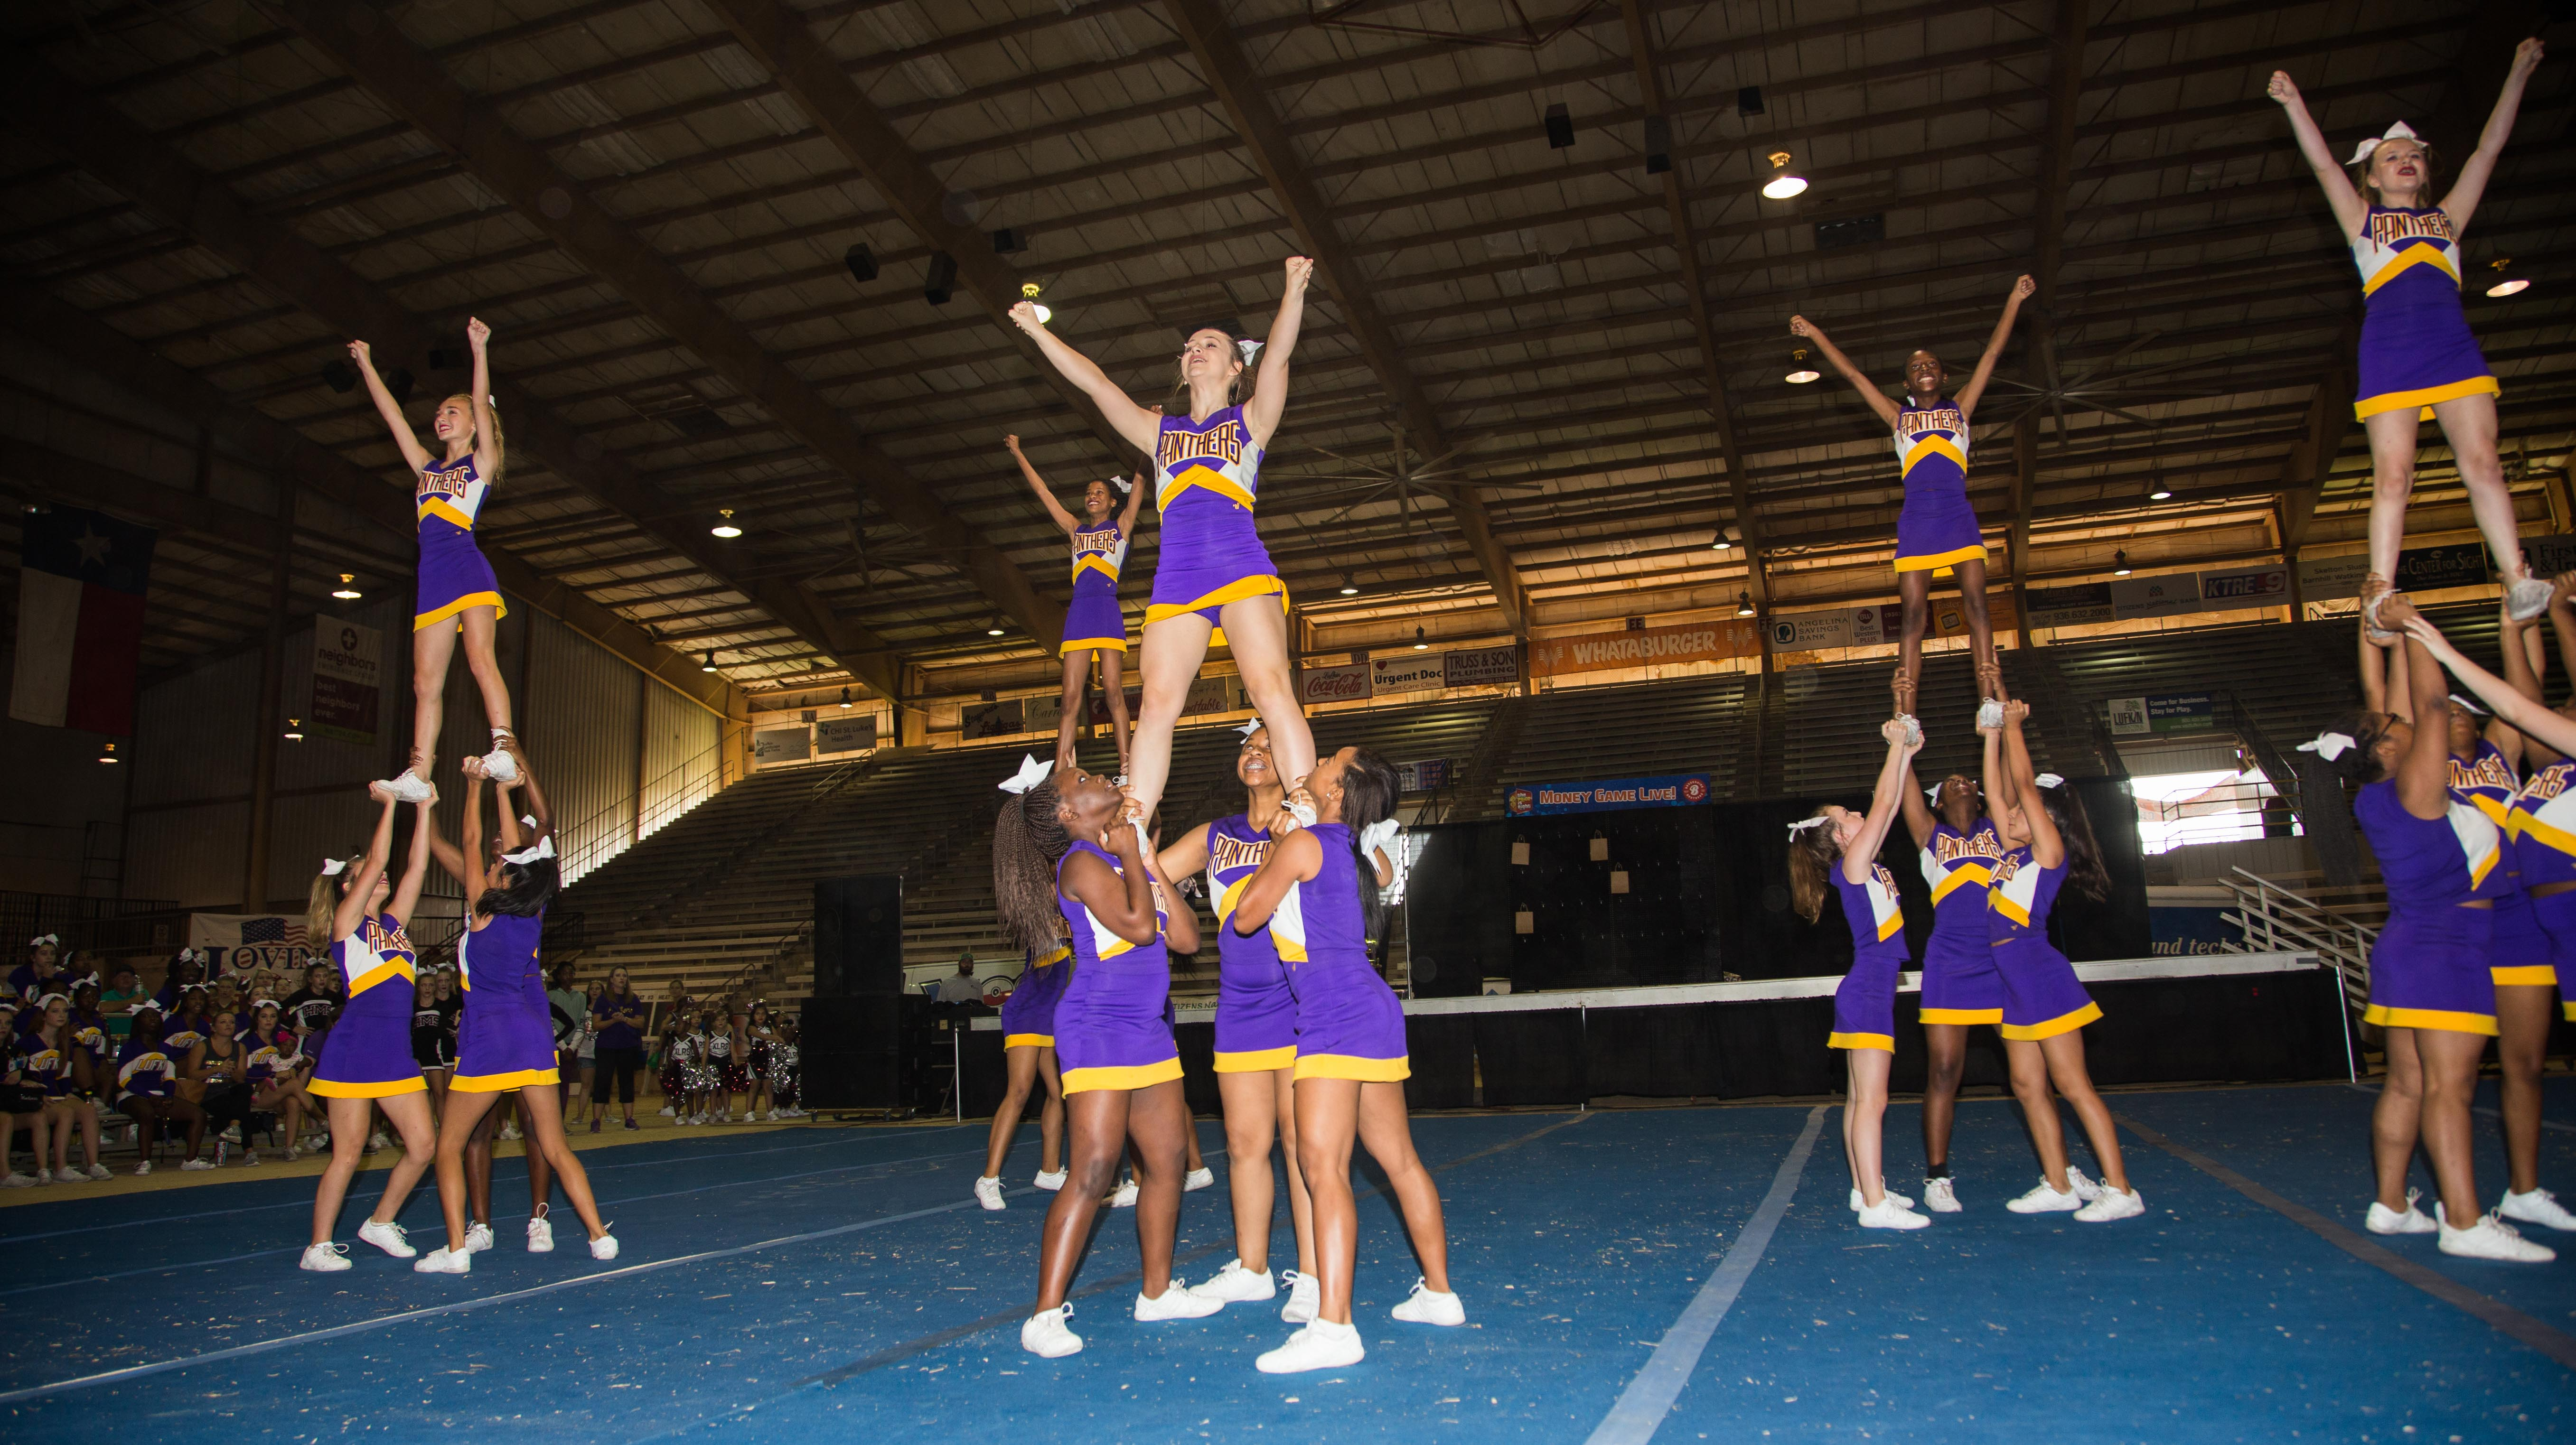 Contact US >> Photos of Lufkin ISD cheerleaders performing at the Texas State Forest Festival | Lufkin ISD